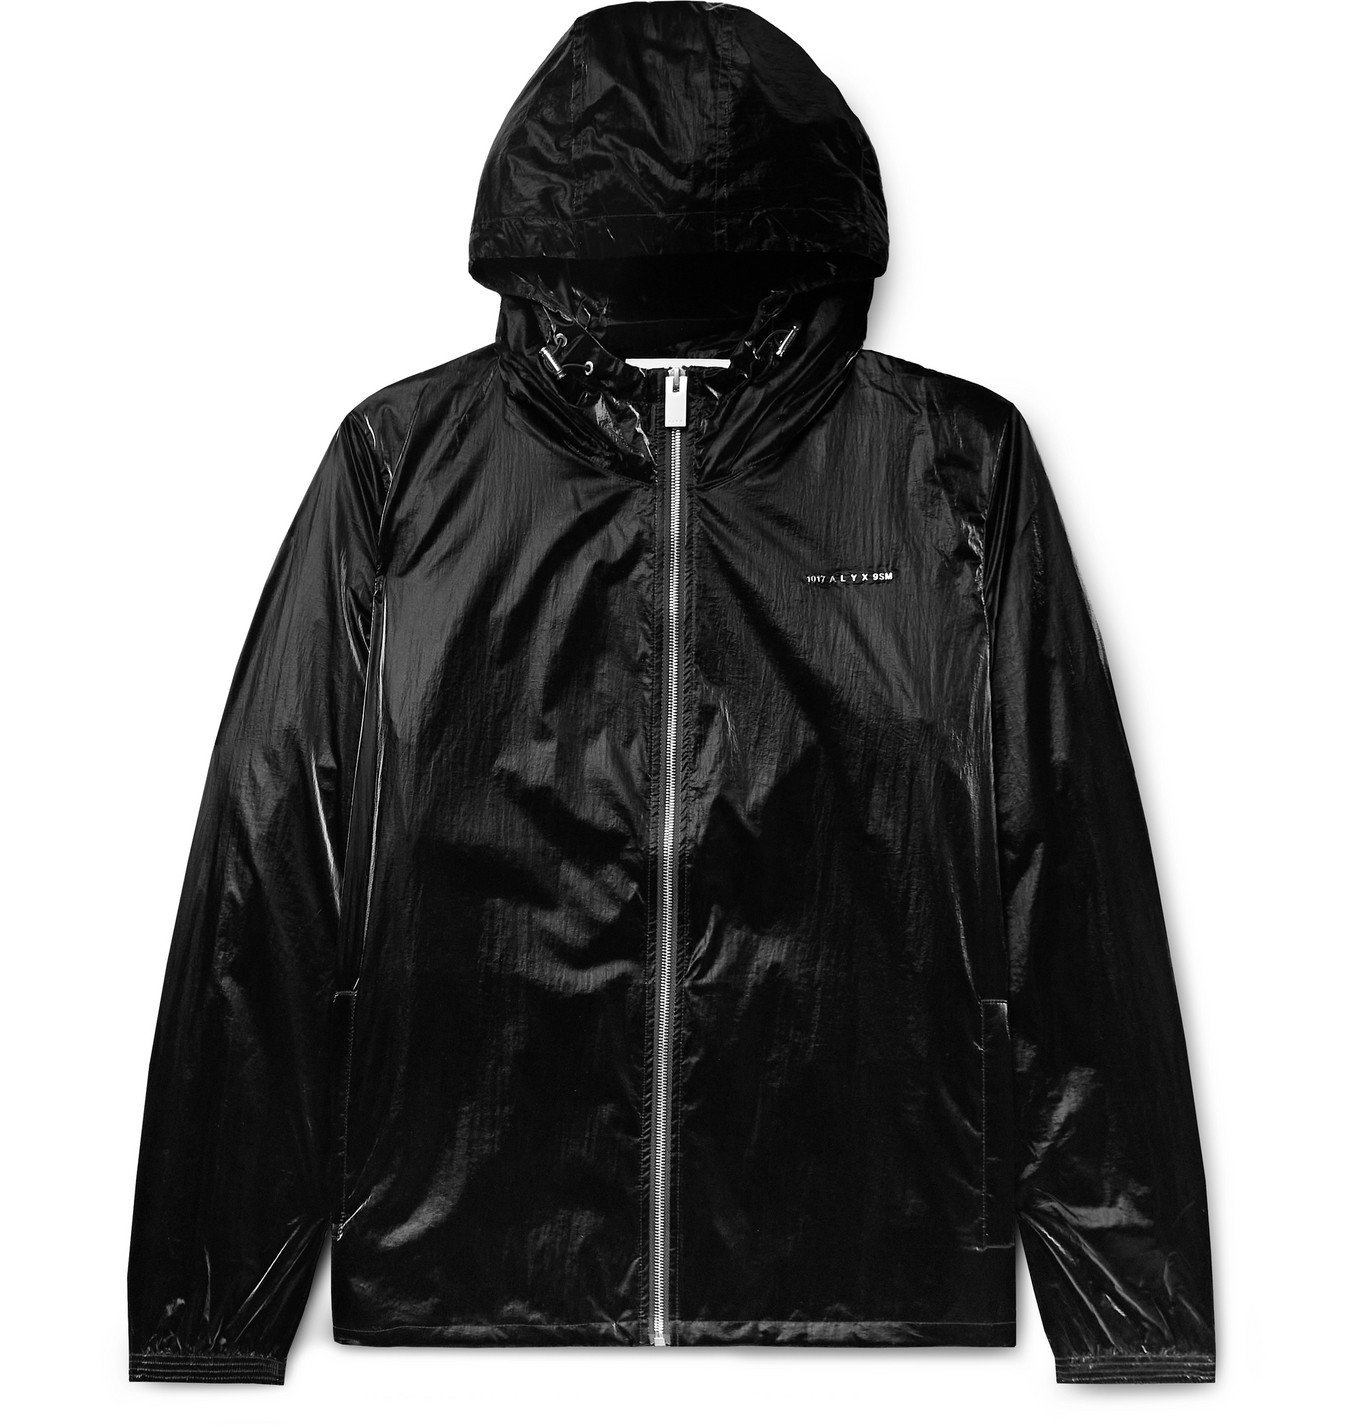 Photo: 1017 ALYX 9SM - Nightrider Logo-Appliquéd Shell Hooded Jacket - Black